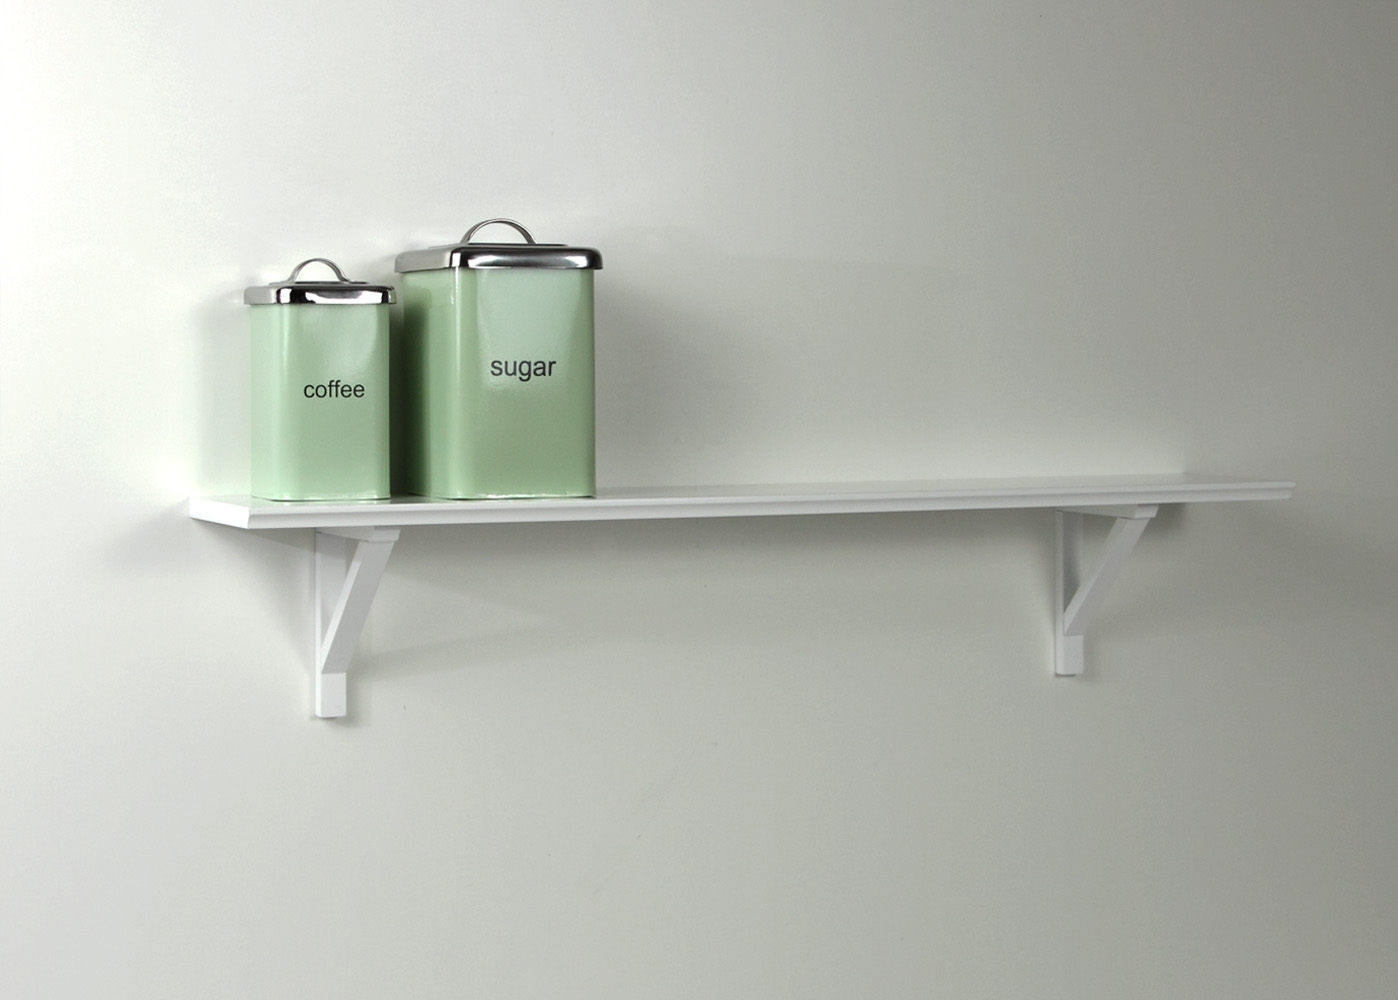 White Wall Shelf Floating White Wall Cube Decorative Shelf With Regard To White Wall Shelves (View 11 of 15)